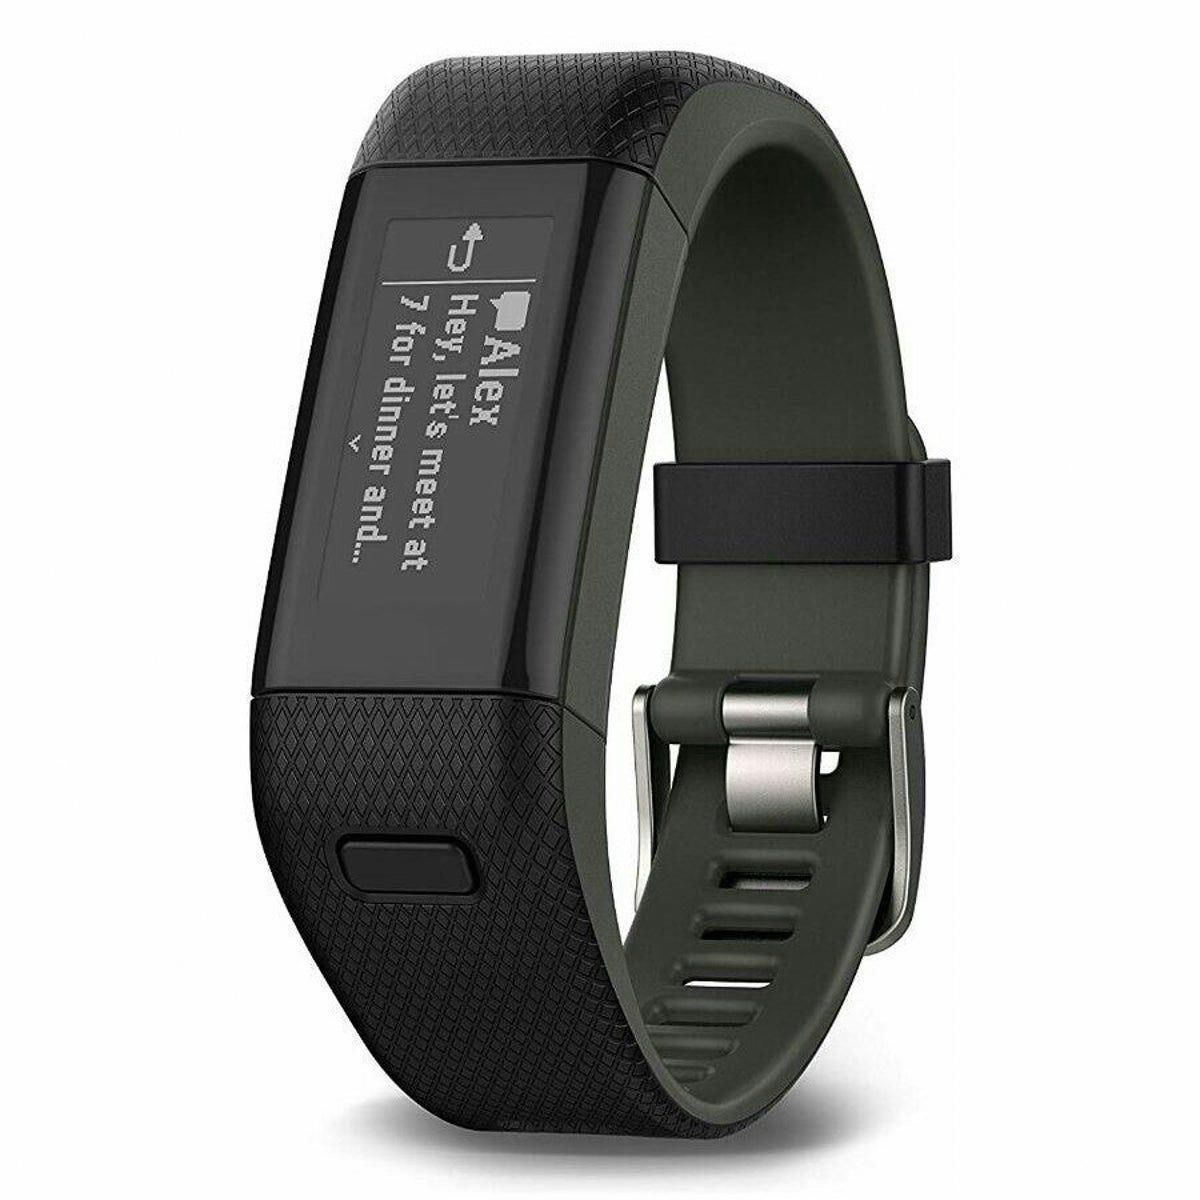 What Are Heart Rate Monitor Watches? in 2020 Fitness